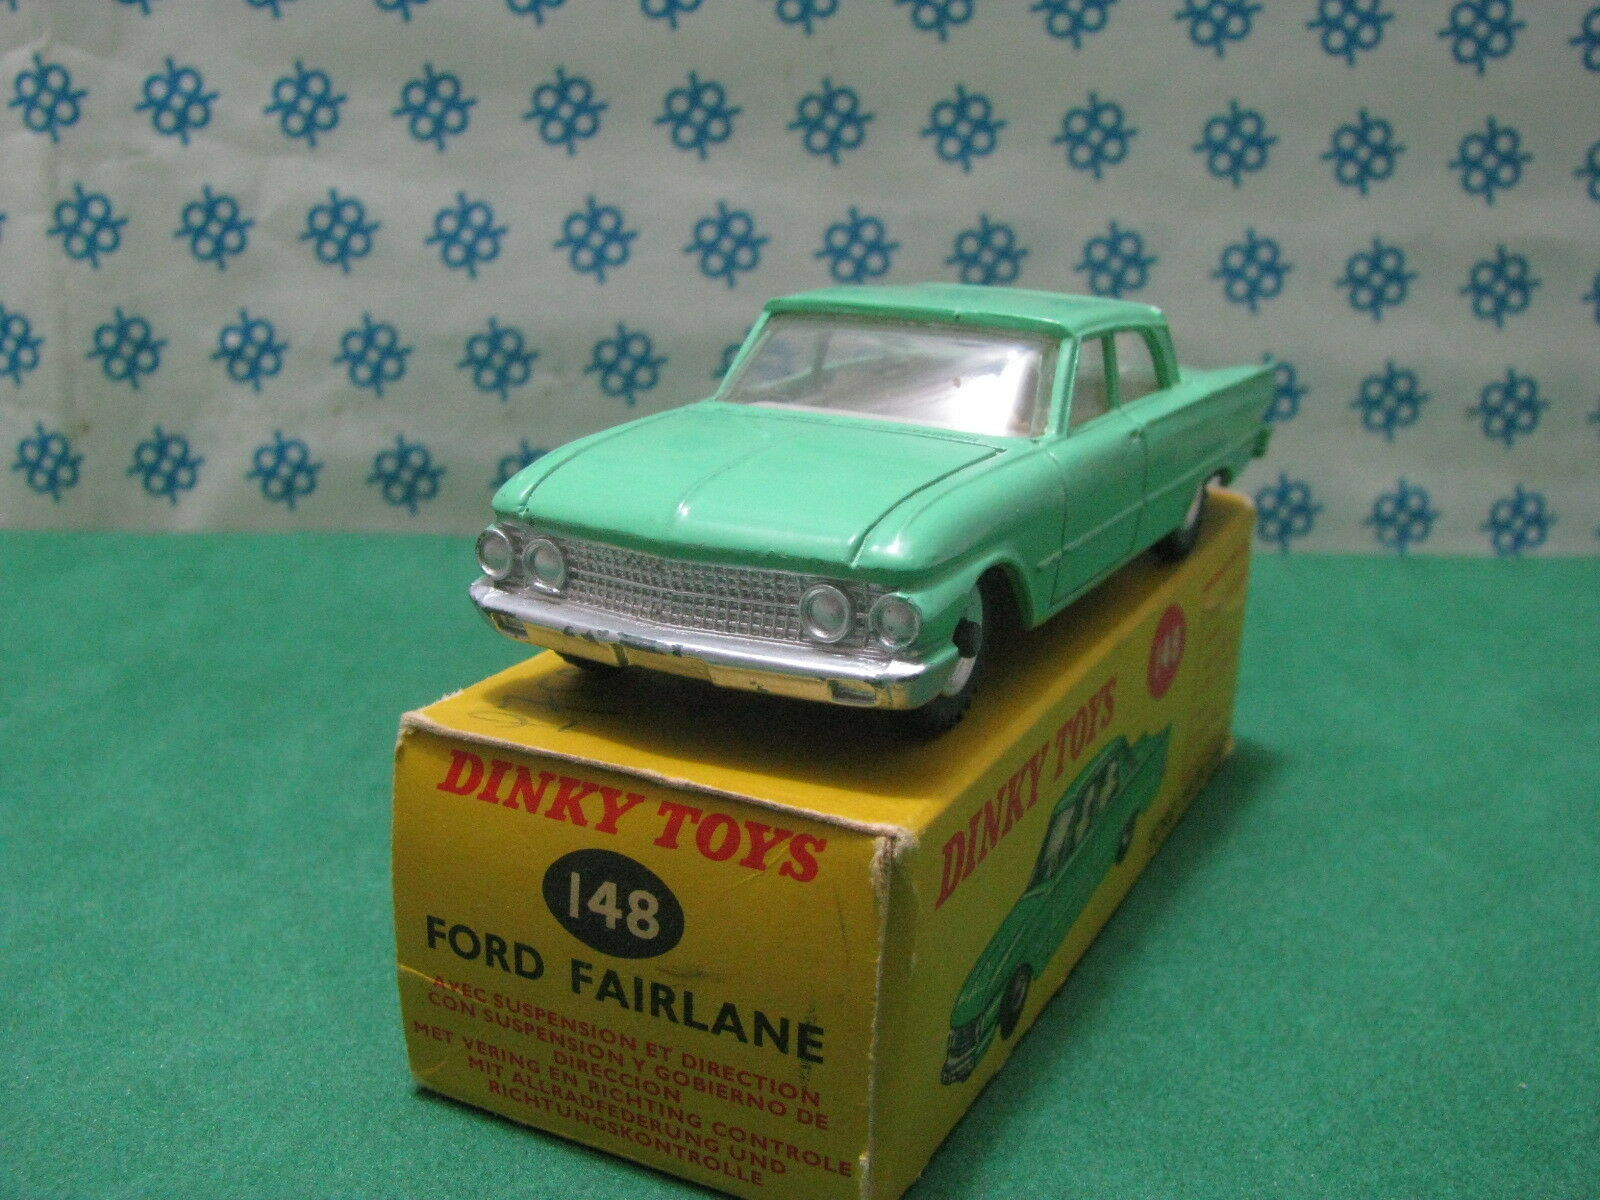 Vintage-Ford Fairlane VN Mint-Dinky Toys 148